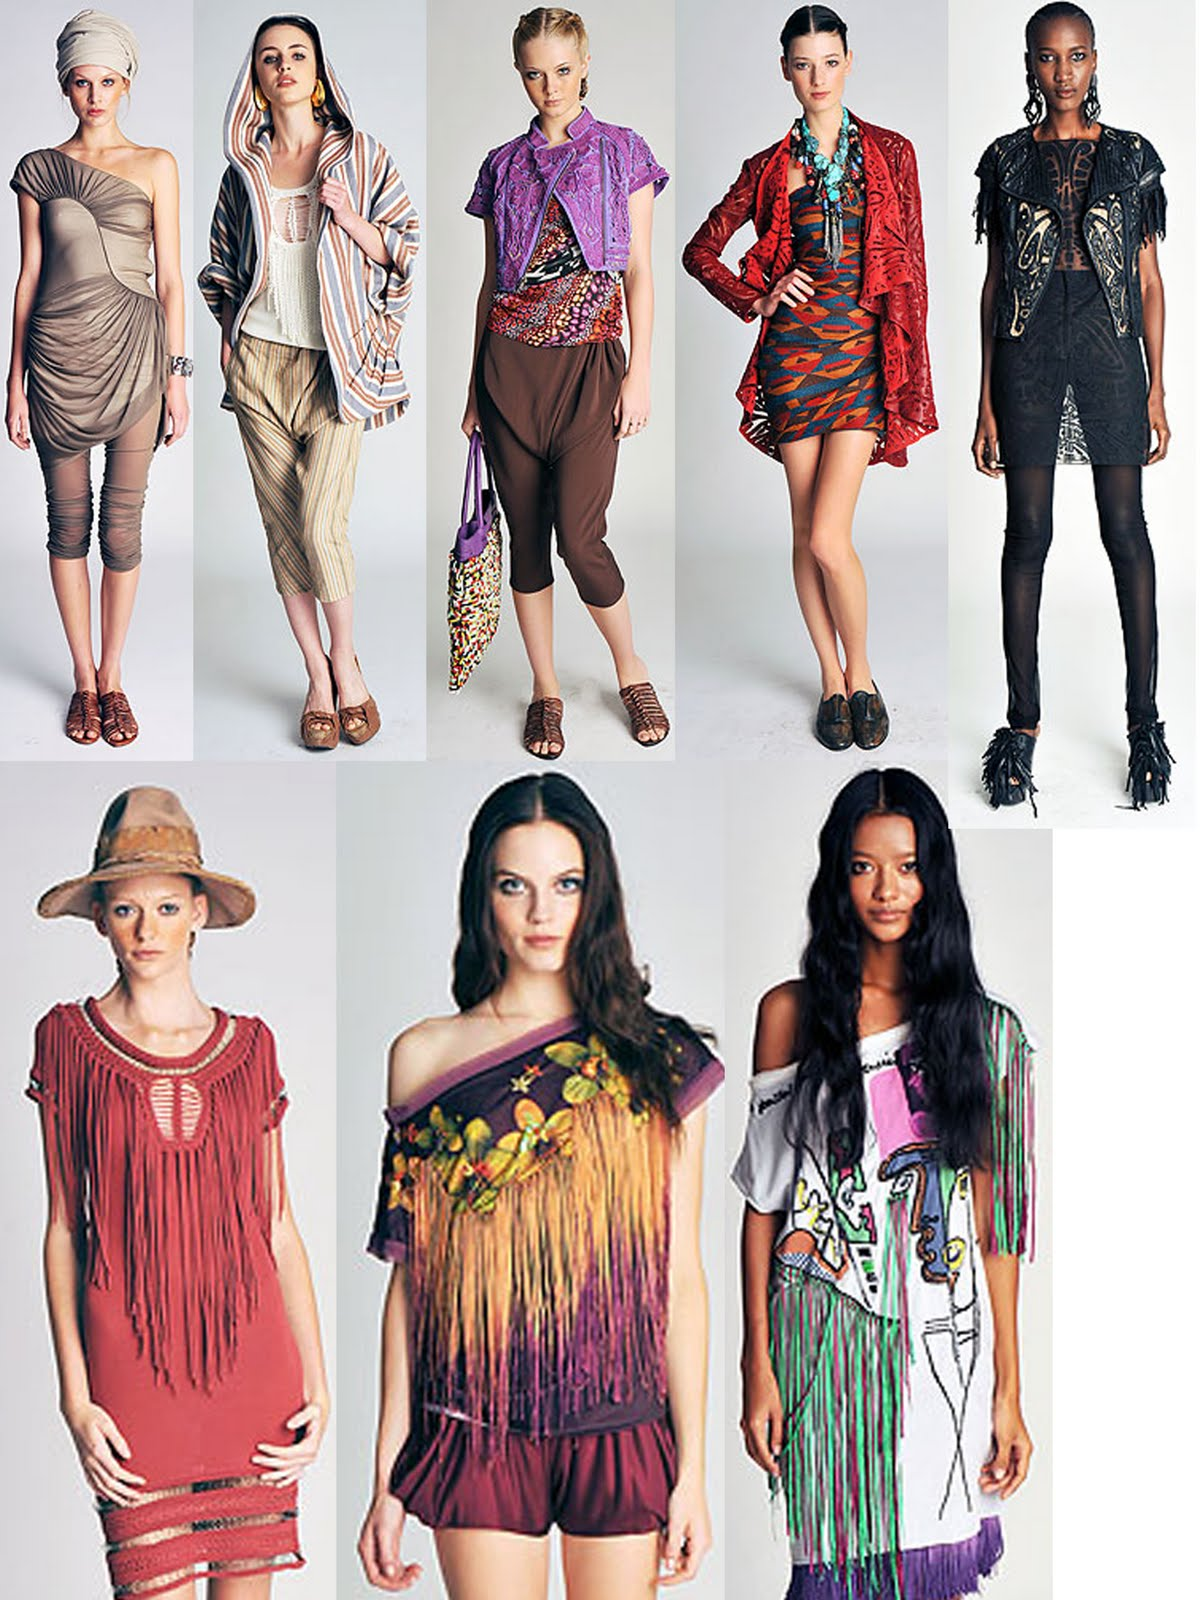 70s Costumes 70s Outfits 70s Fashion and 70s Costume